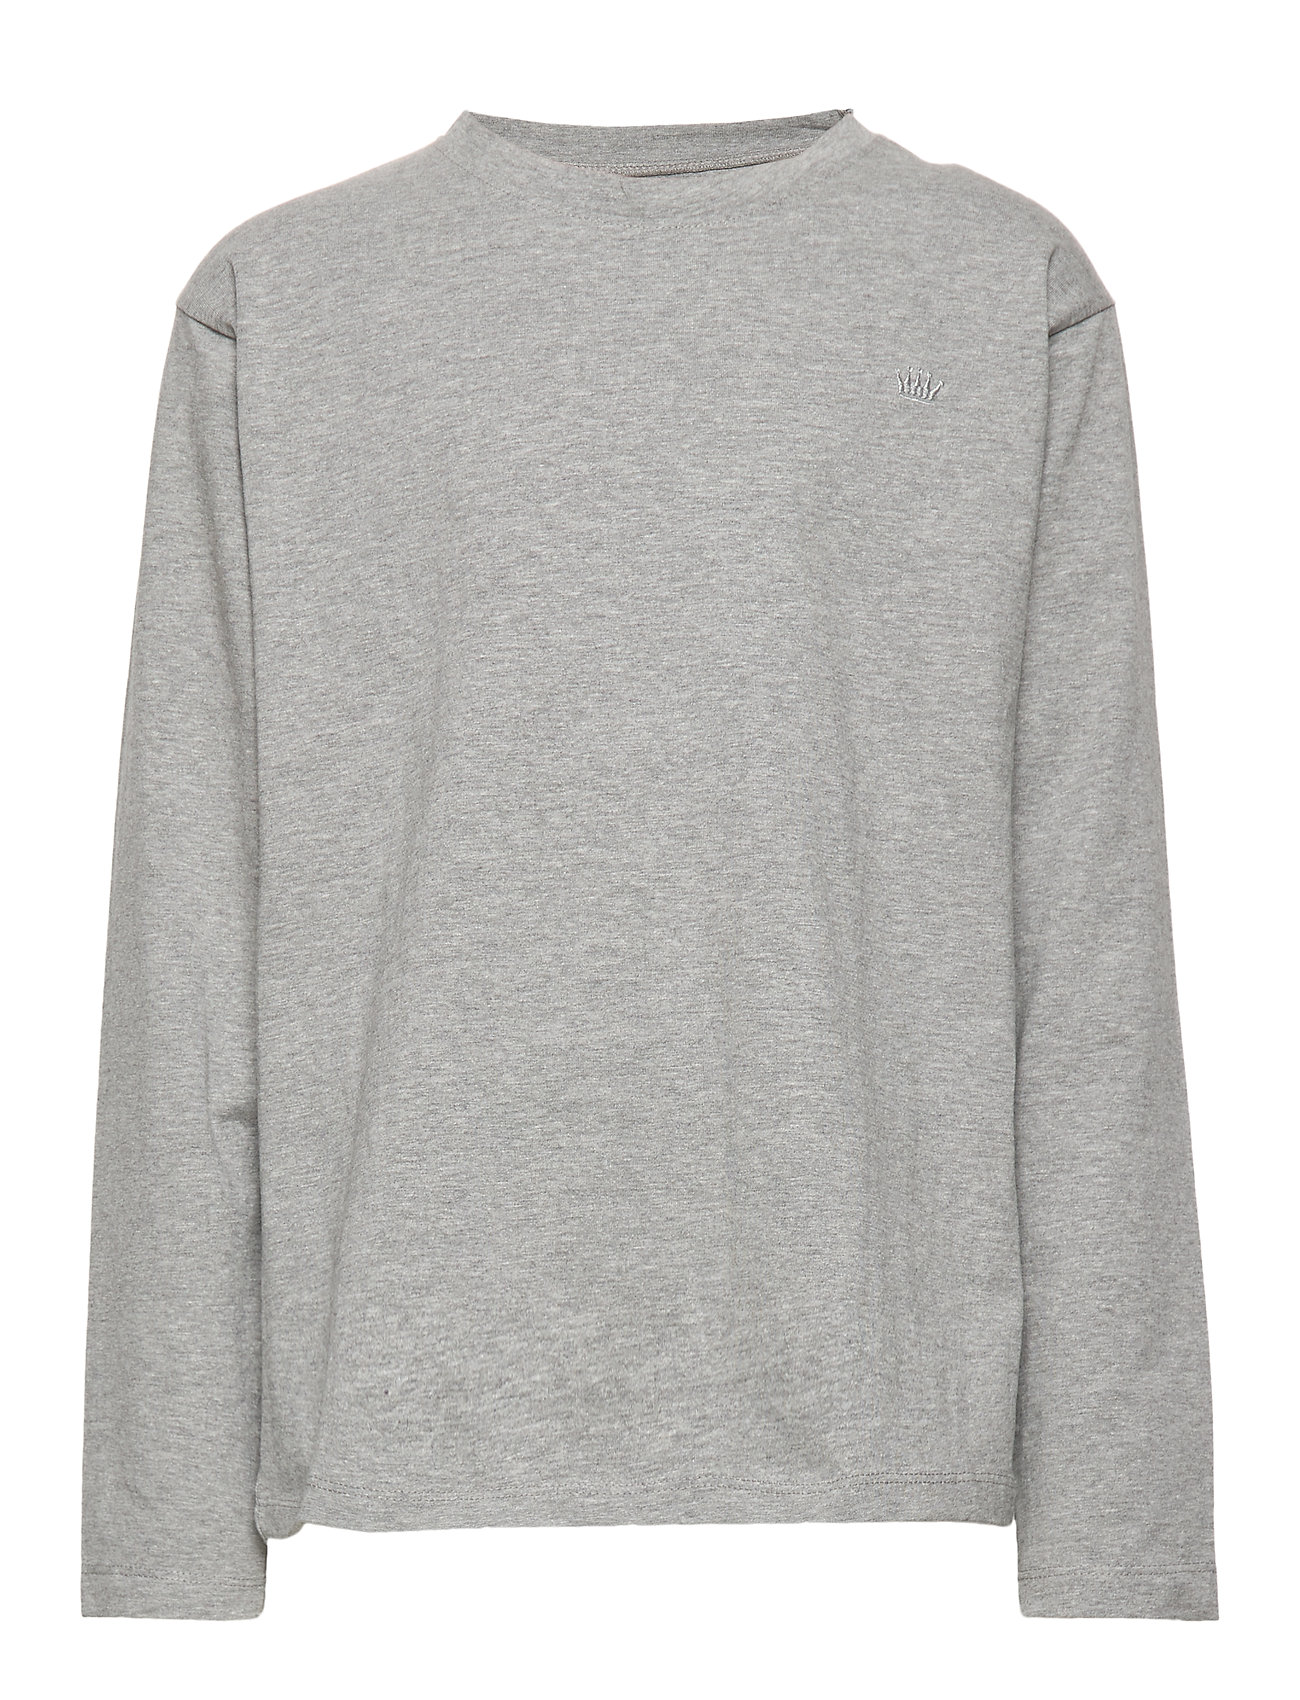 Hust & Claire T-shirt L/S - LIGHT GREY MELANGE